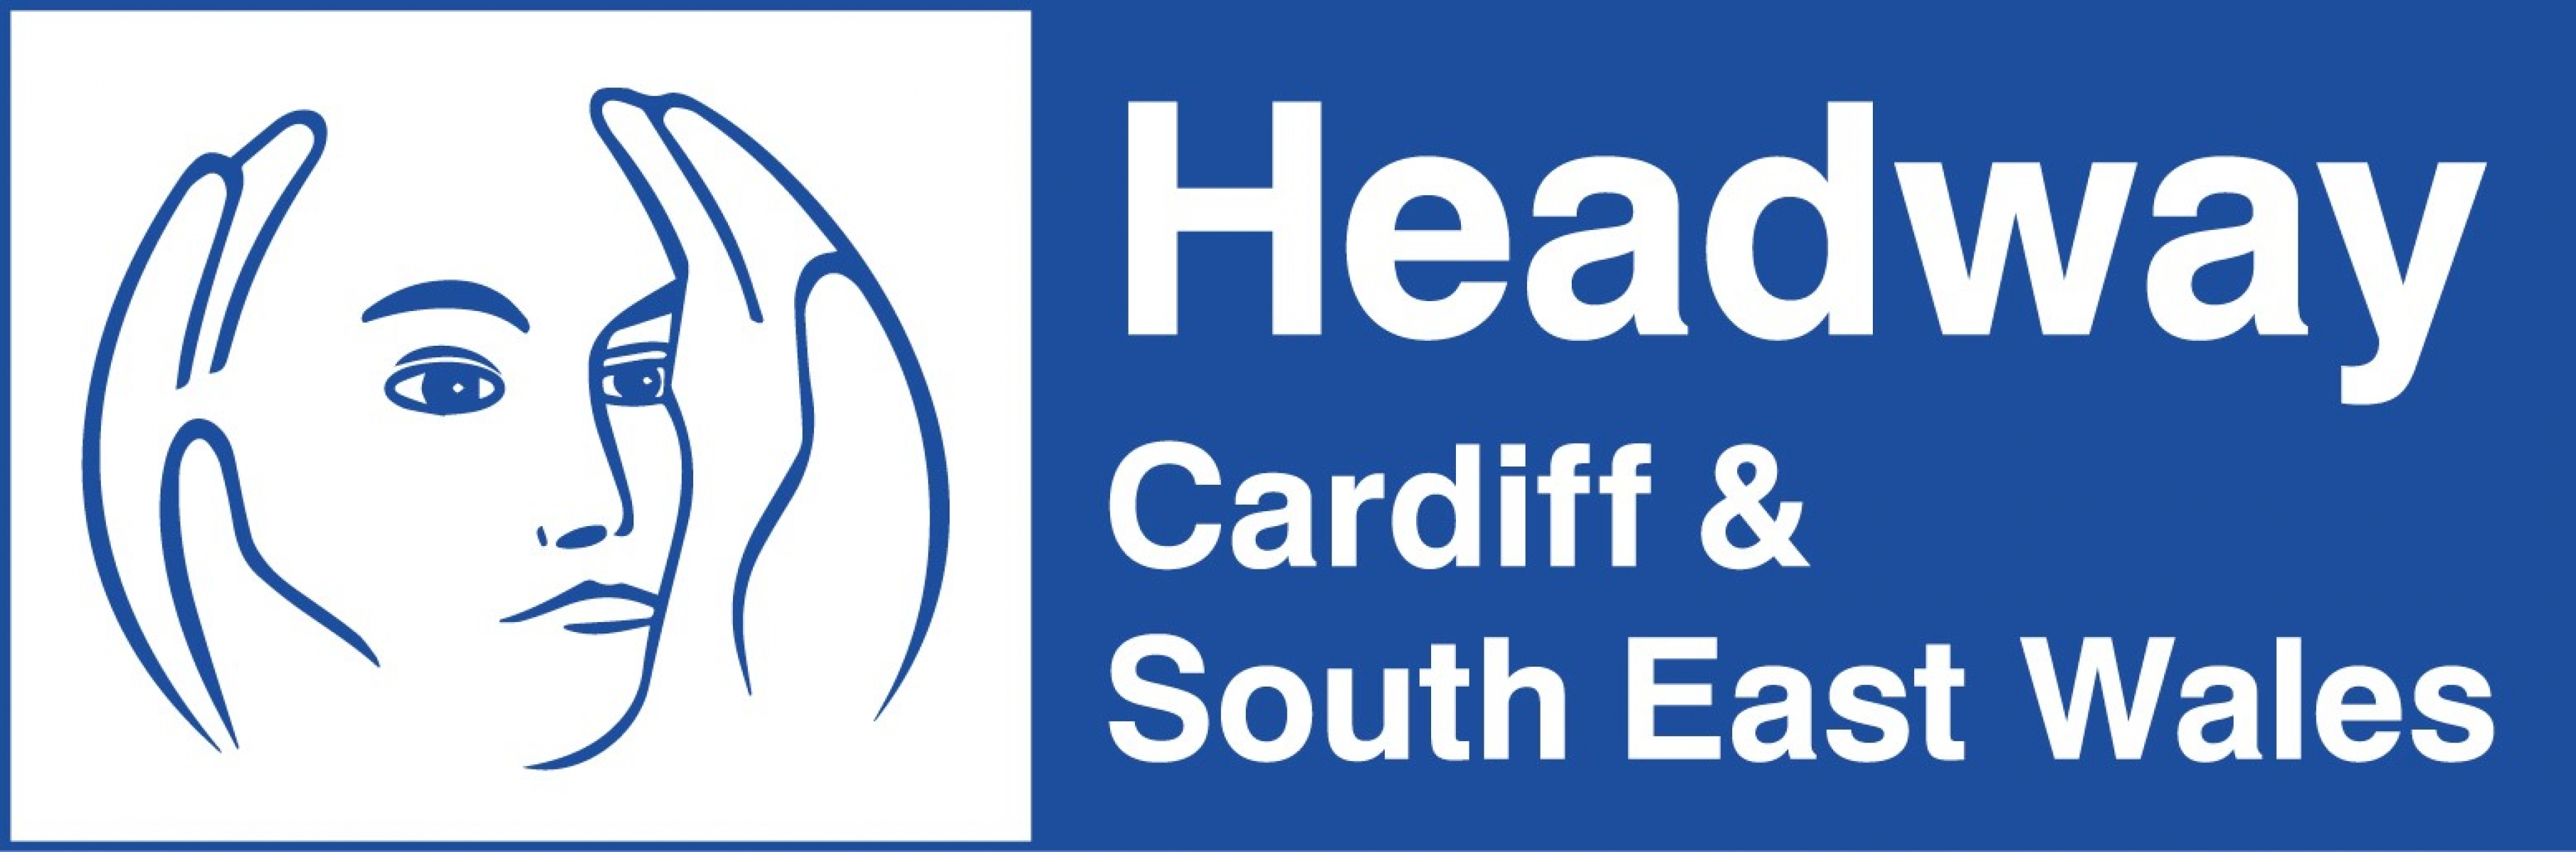 Headway Cardiff & South East Wales eCards